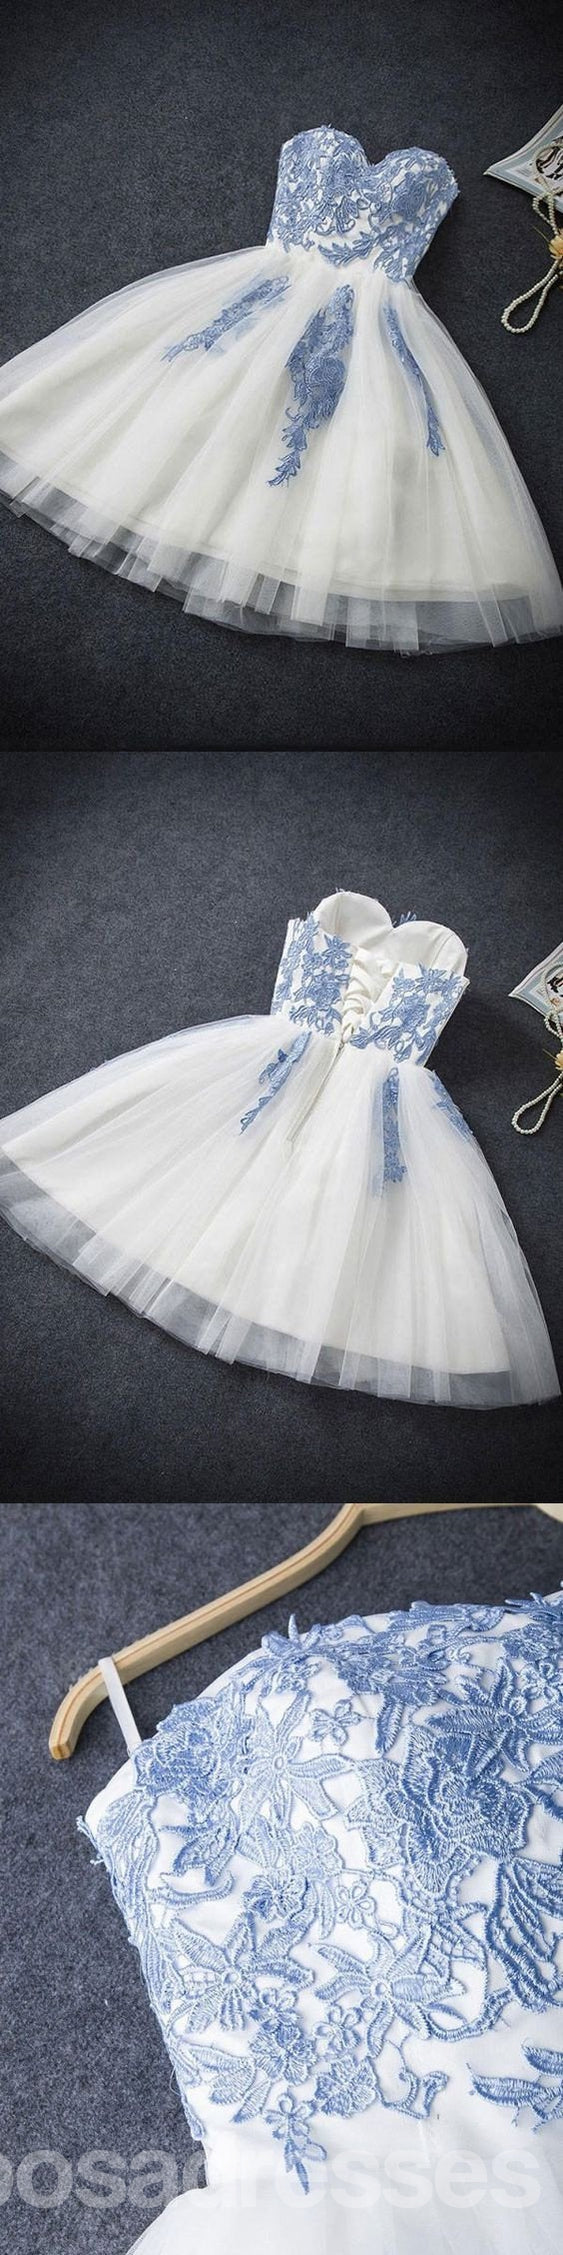 Strapless Sweetheart Neckline Blue Lace Tulle Homecoming Prom Dresses, Affordable Short Party Prom Sweet 16 Dresses, Perfect Homecoming Cocktail Dresses, CM353